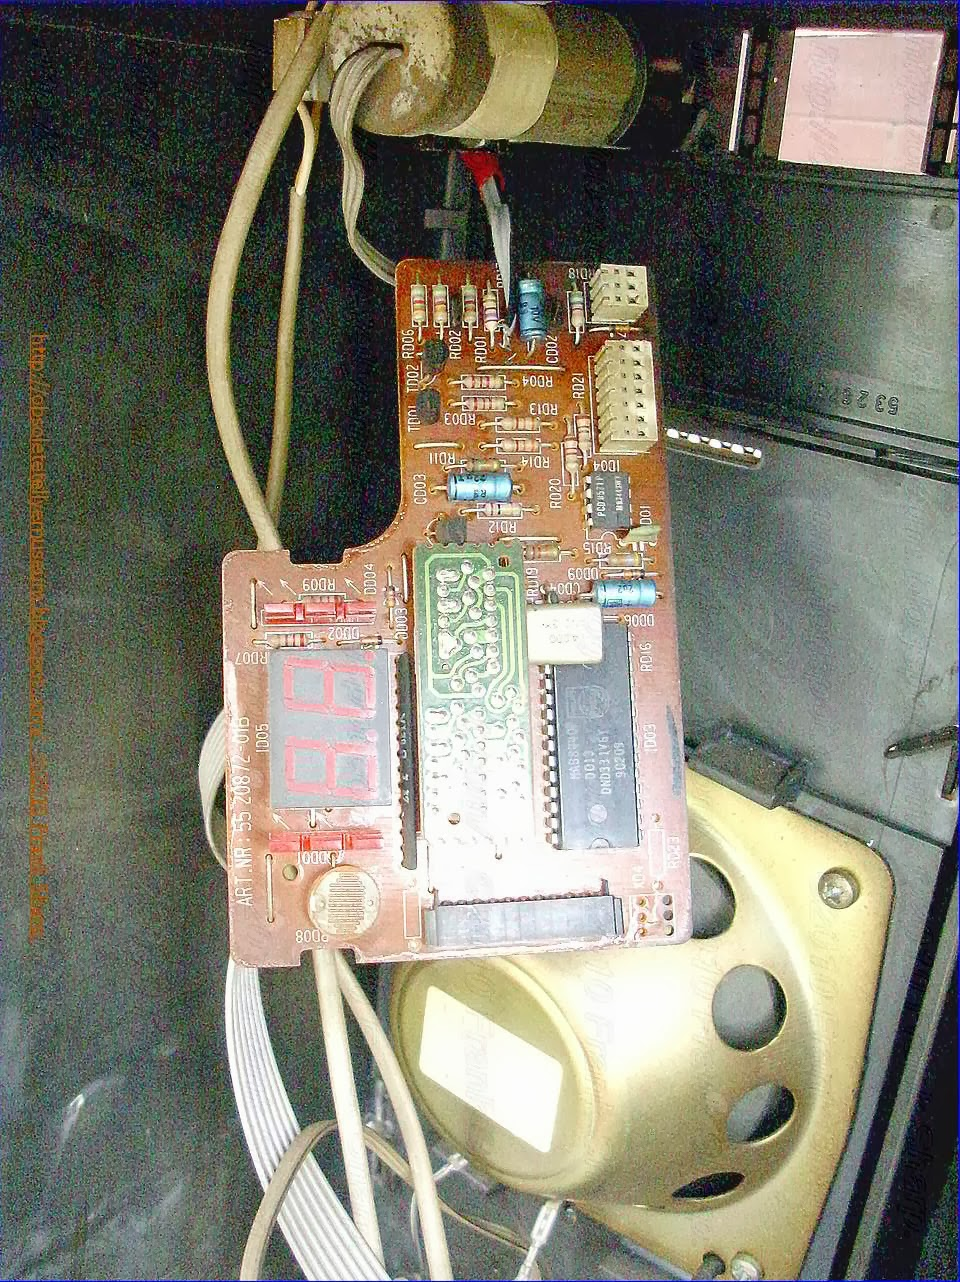 Obsolete Technology Tellye !: LUXOR 5134 TYPE 18051341 CHASSIS B3-1 ...